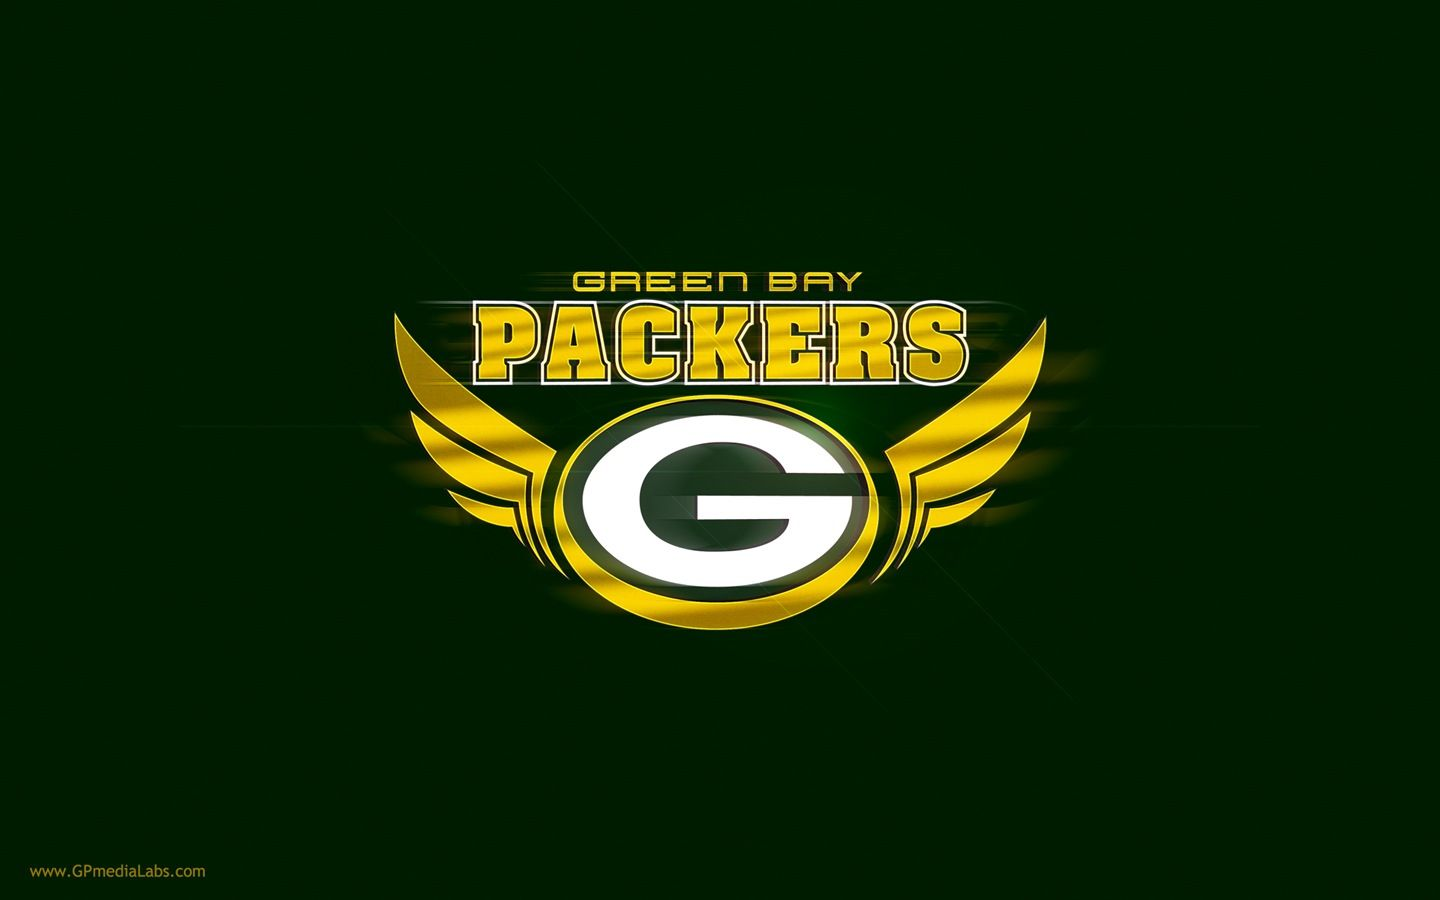 Go Greenbay Packers Green Bay Packers Wallpaper Green Bay Packers Pictures Green Bay Packers Logo